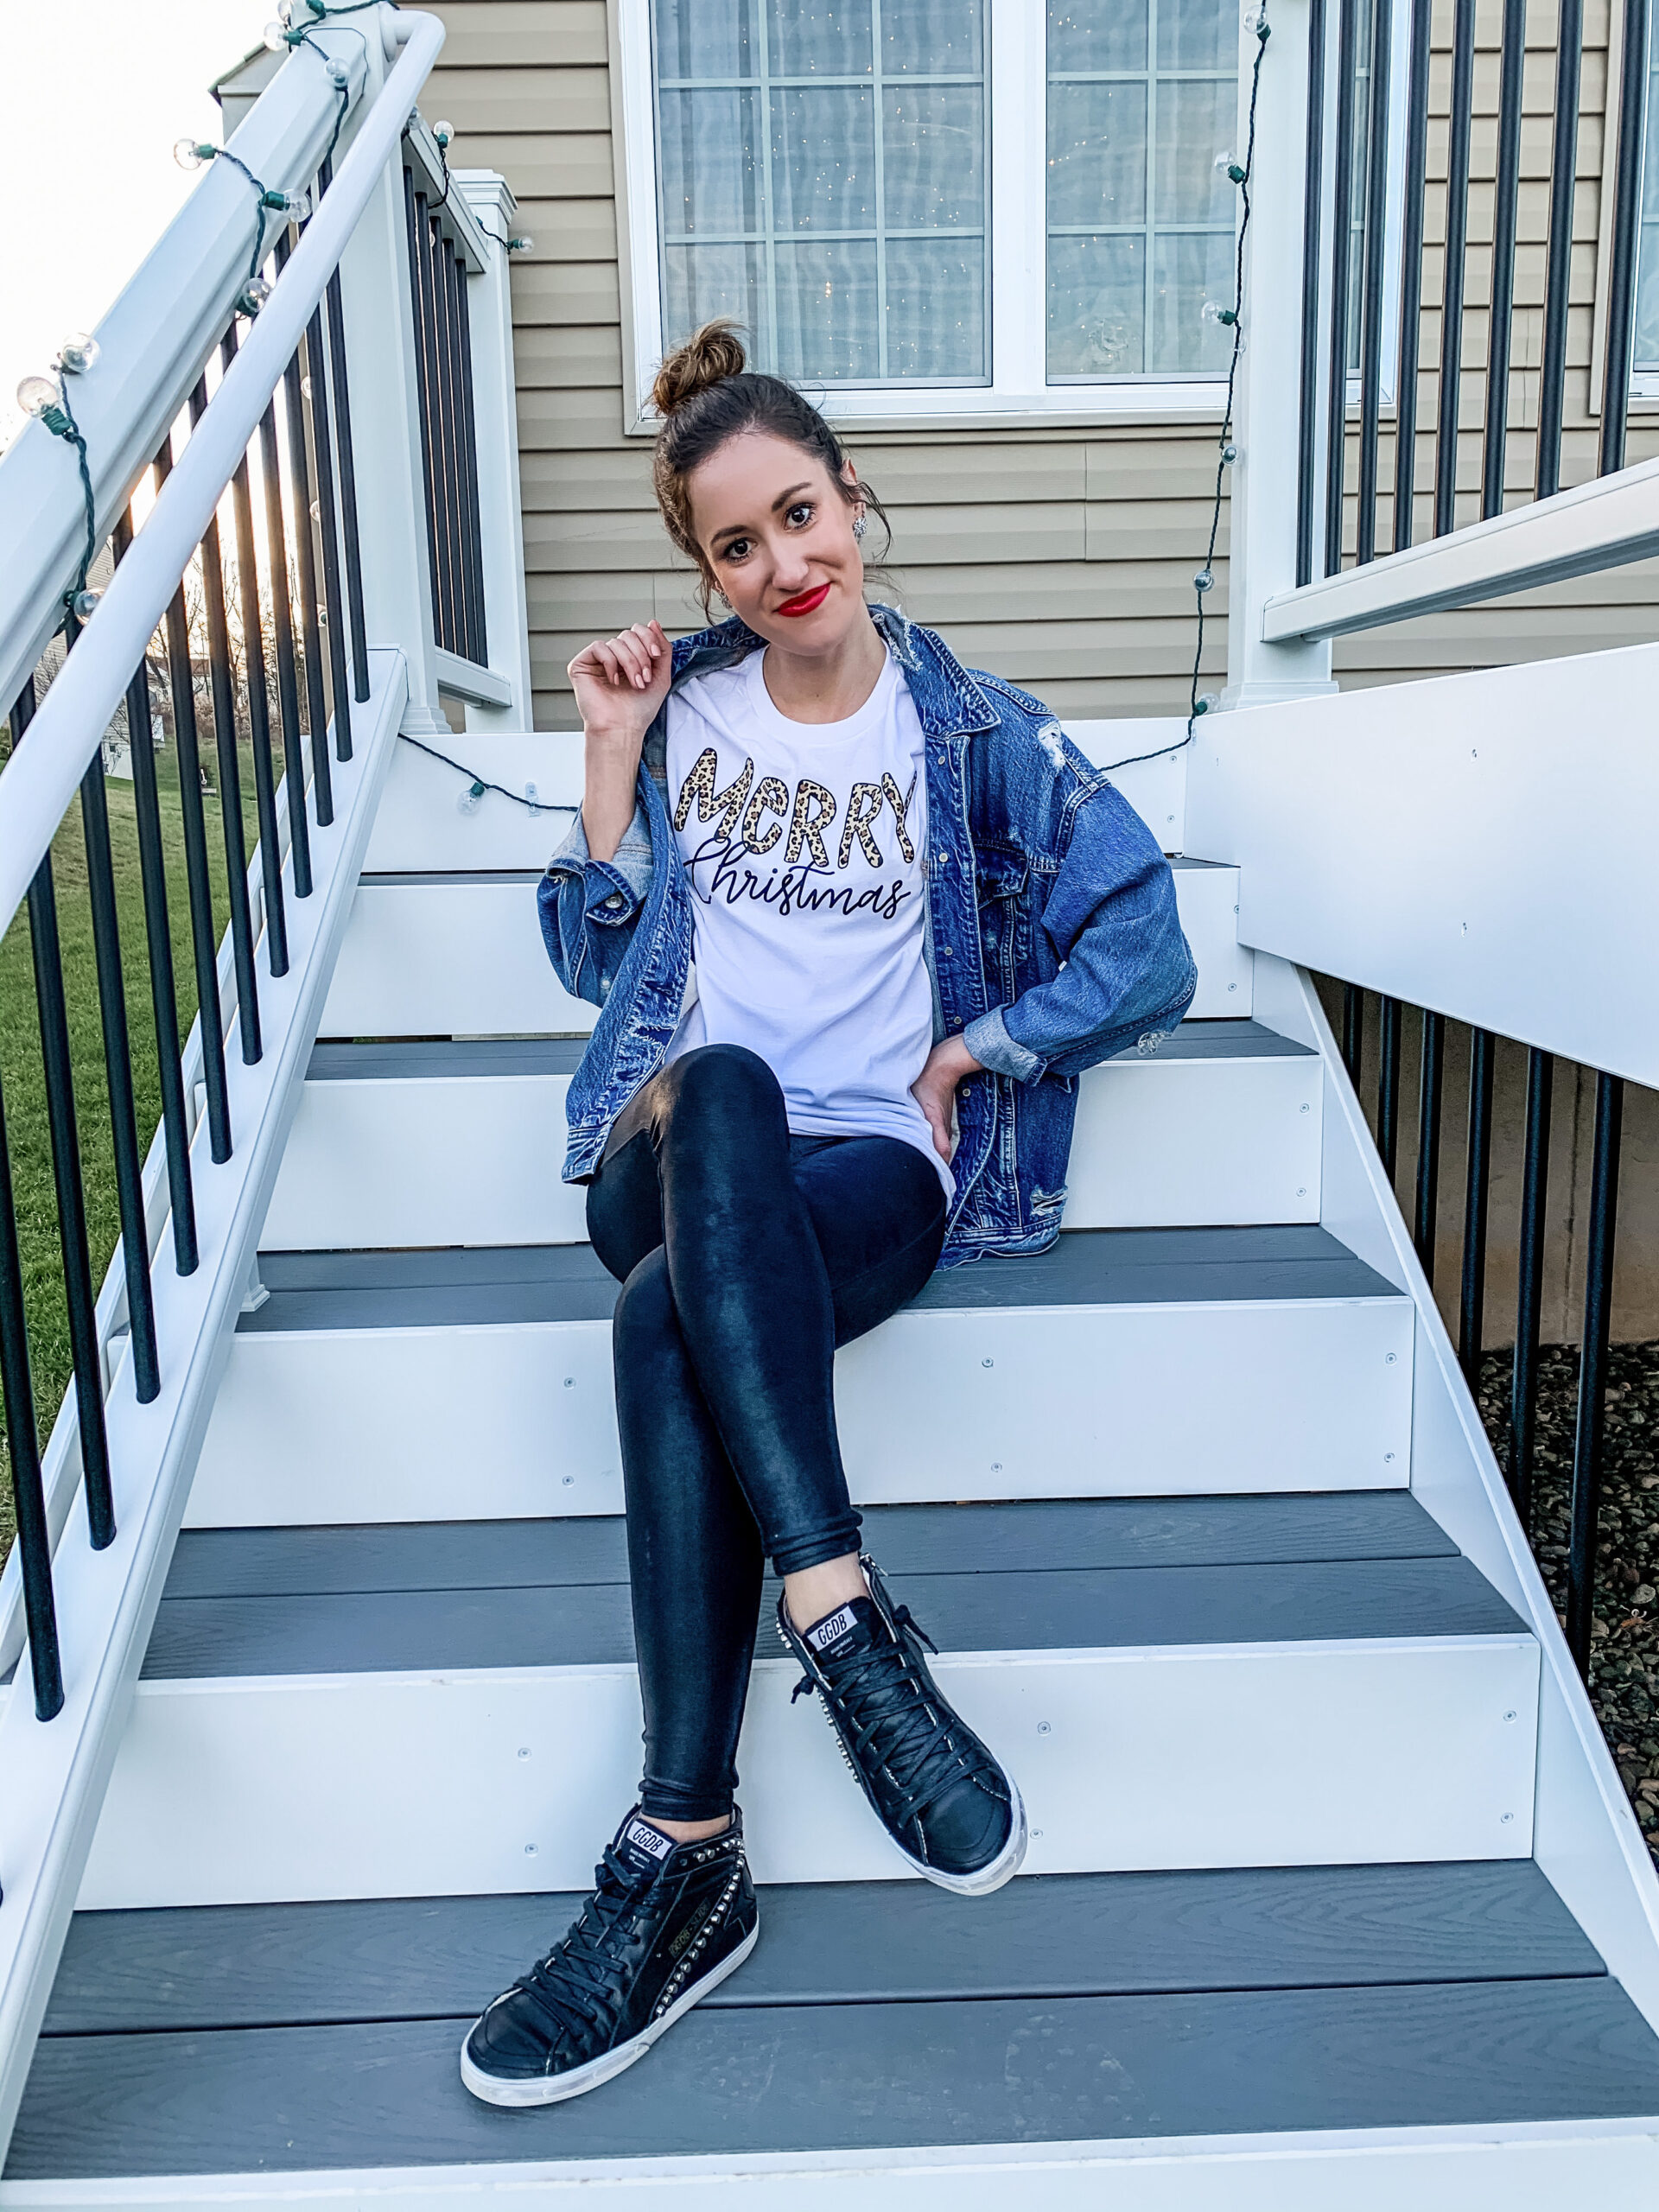 The Best CHRISTMAS GRAPHIC TEES + Sweatshirts for Women - on Coming Up Roses